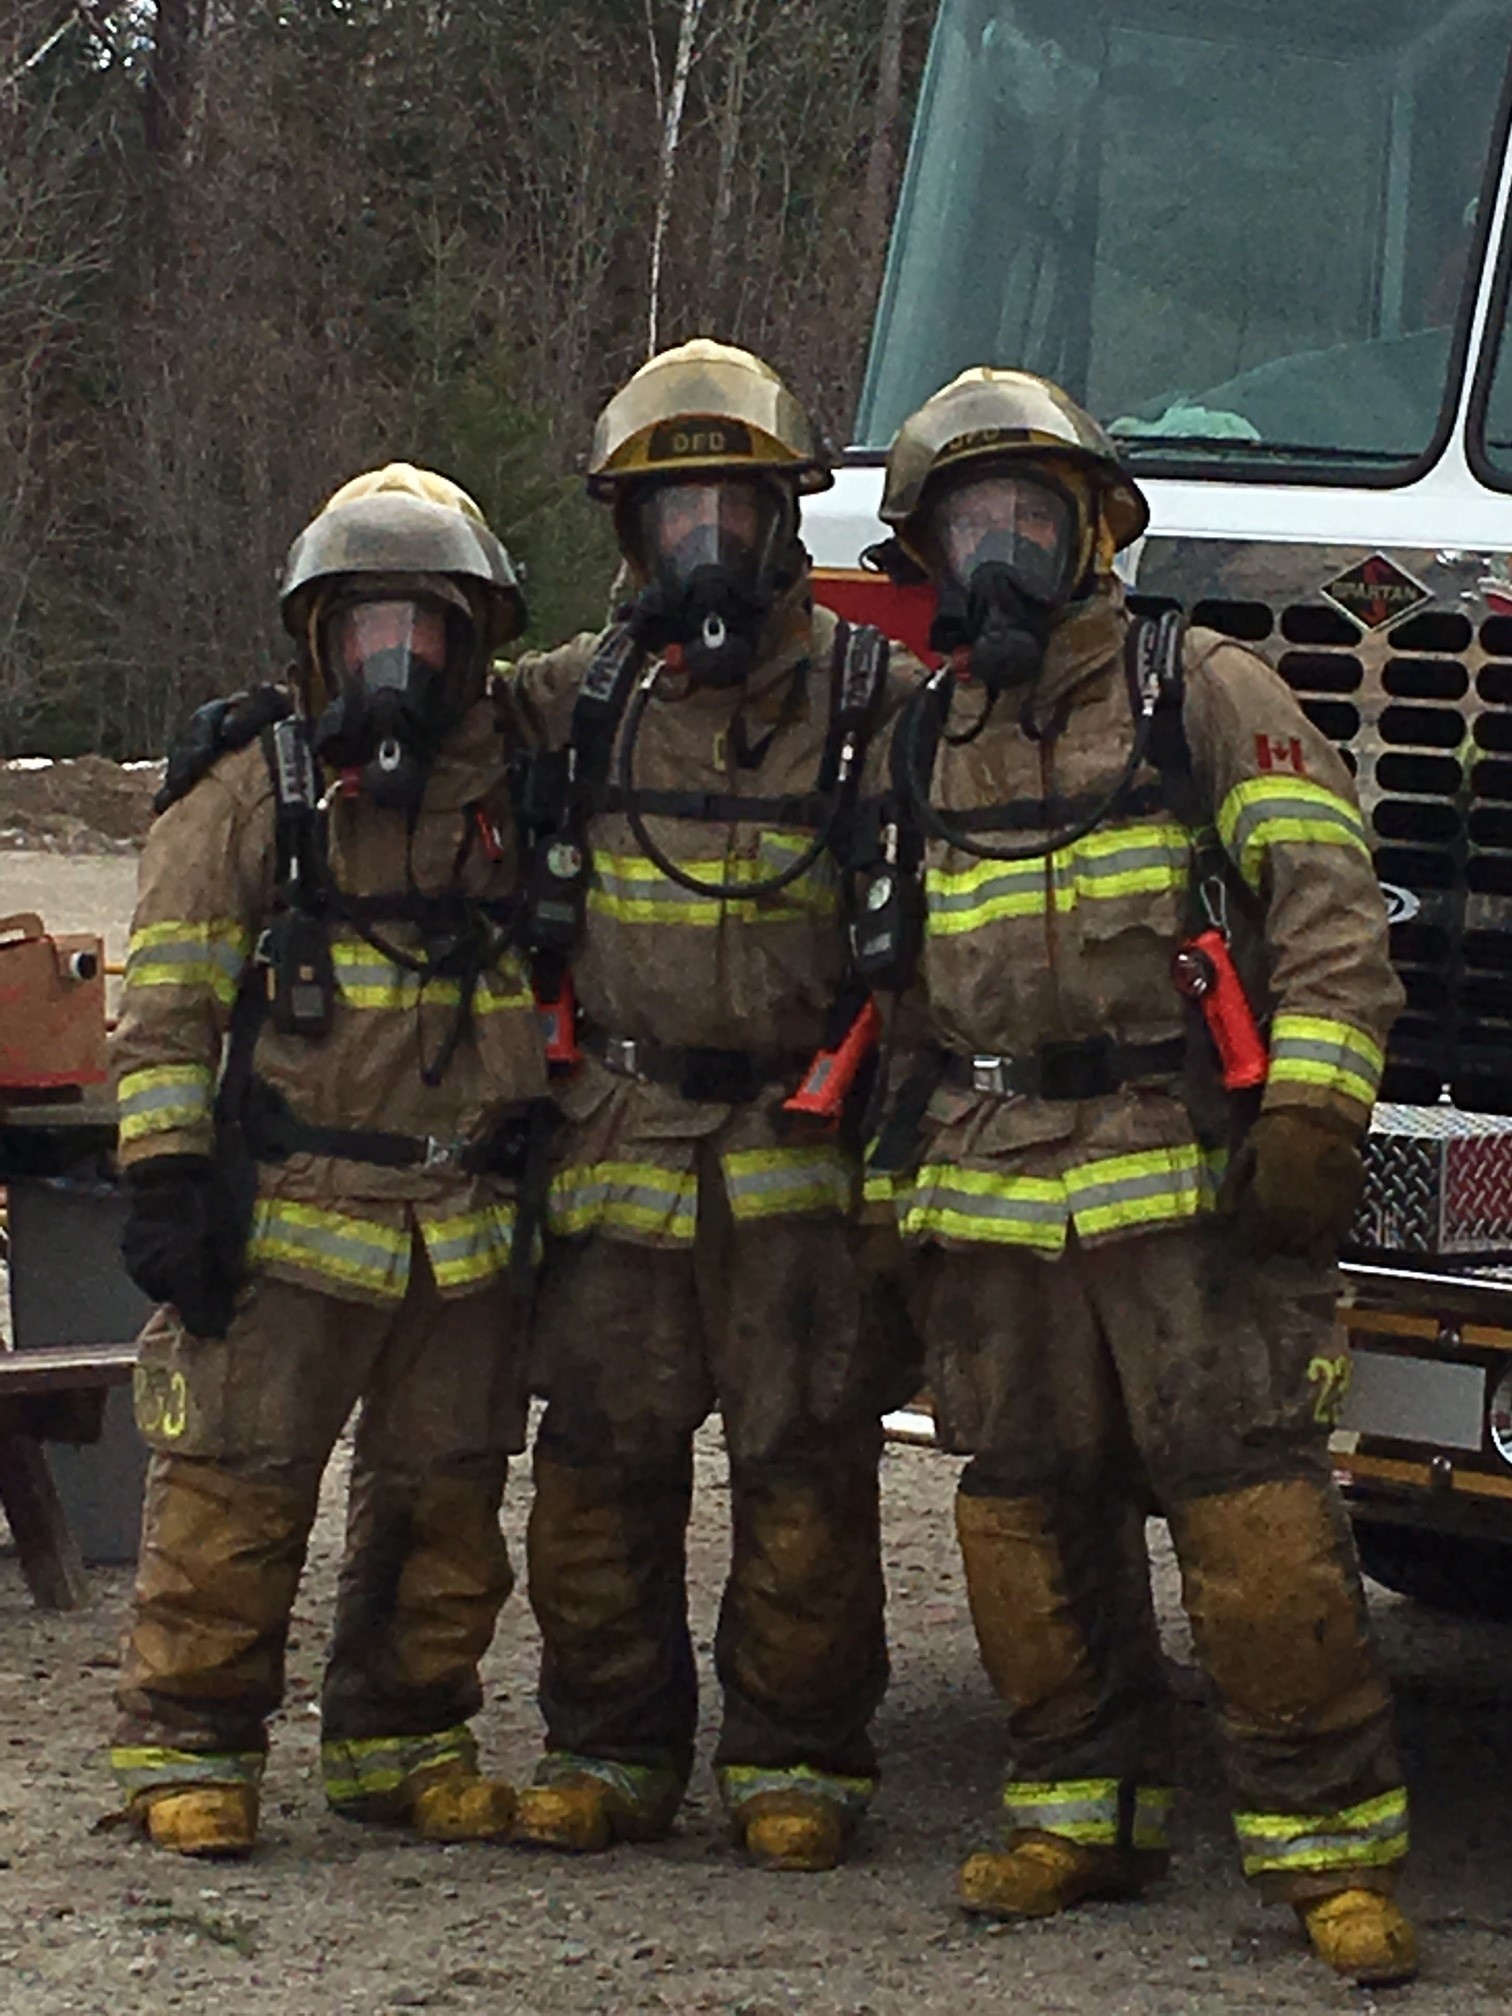 Photo of three firefighters at live fire training